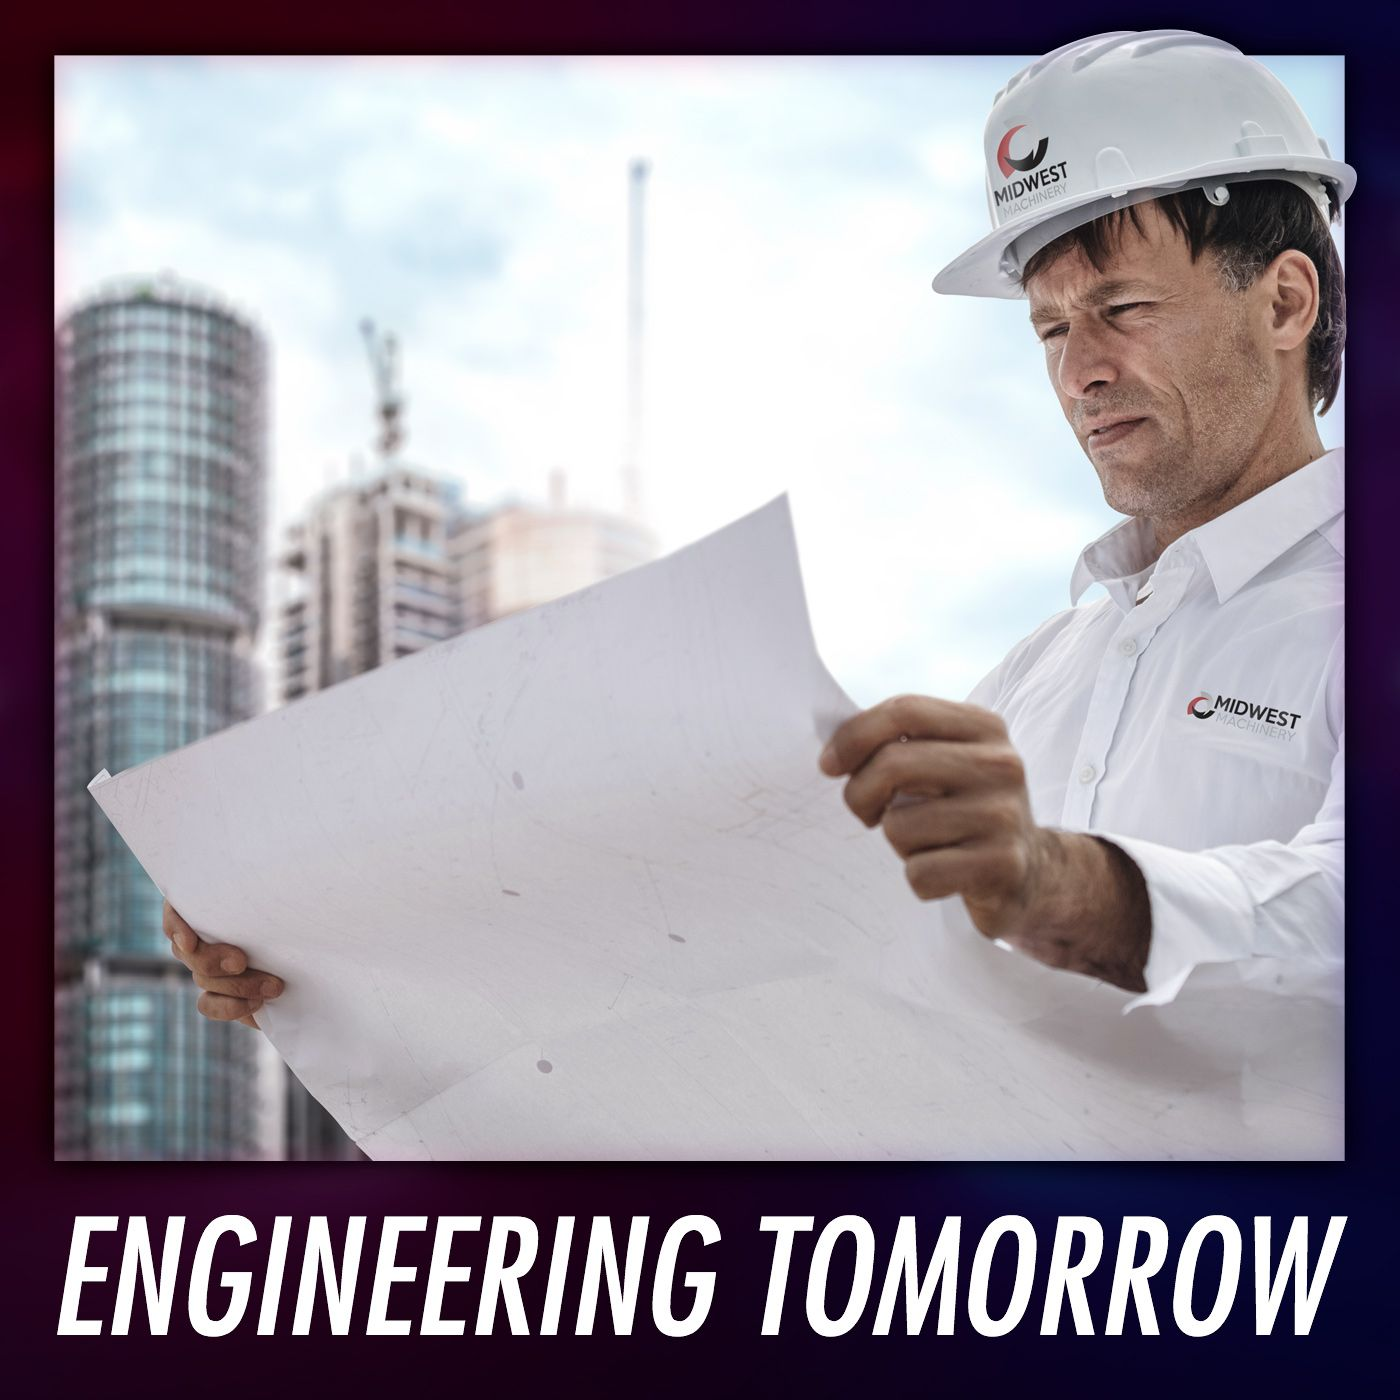 Engineering Tomorrow